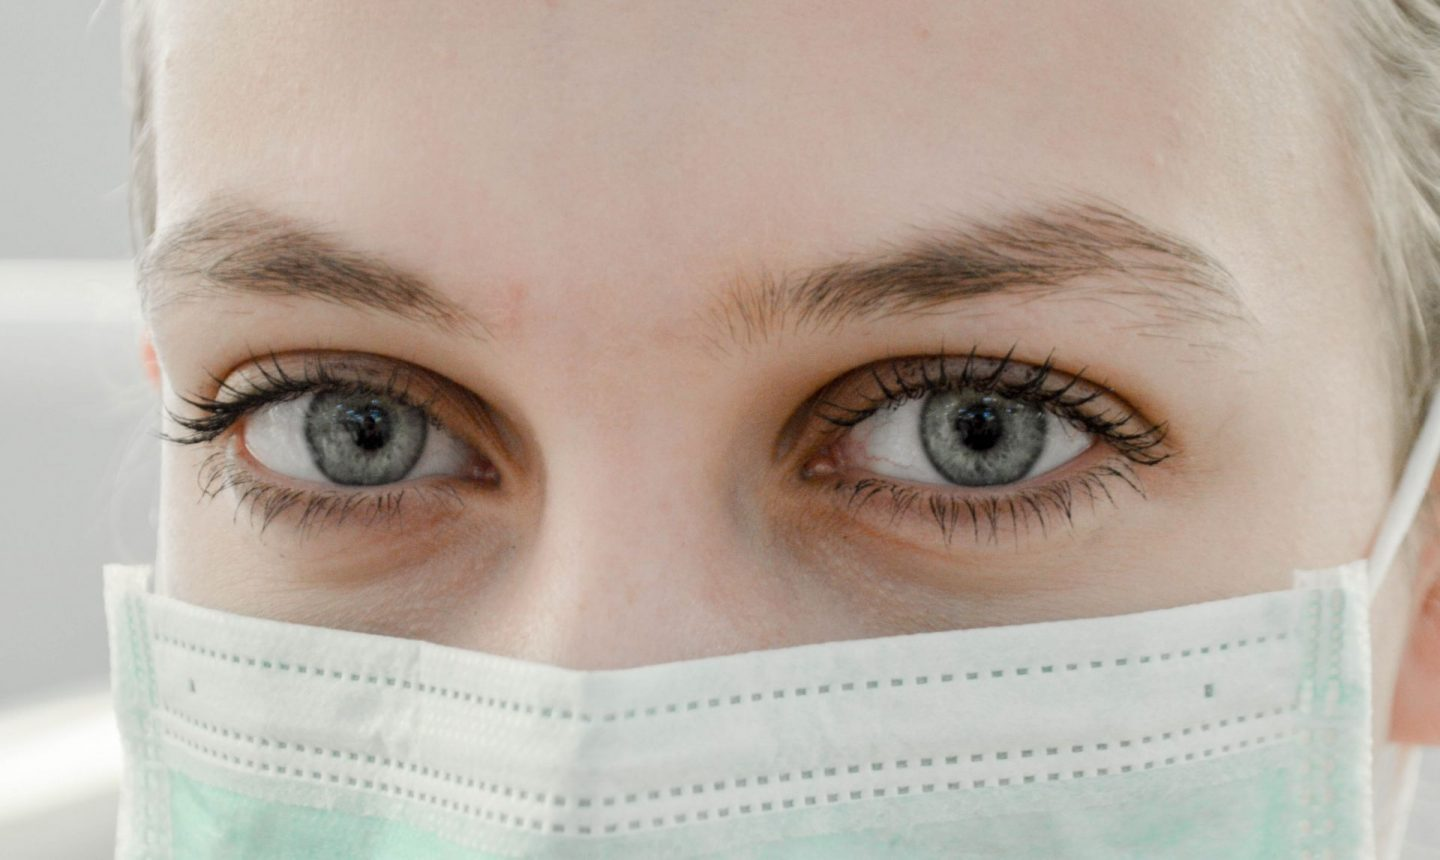 , Dental Care During the Pandemic: Should You Go to the Dentist Even if It's Not an Emergency?